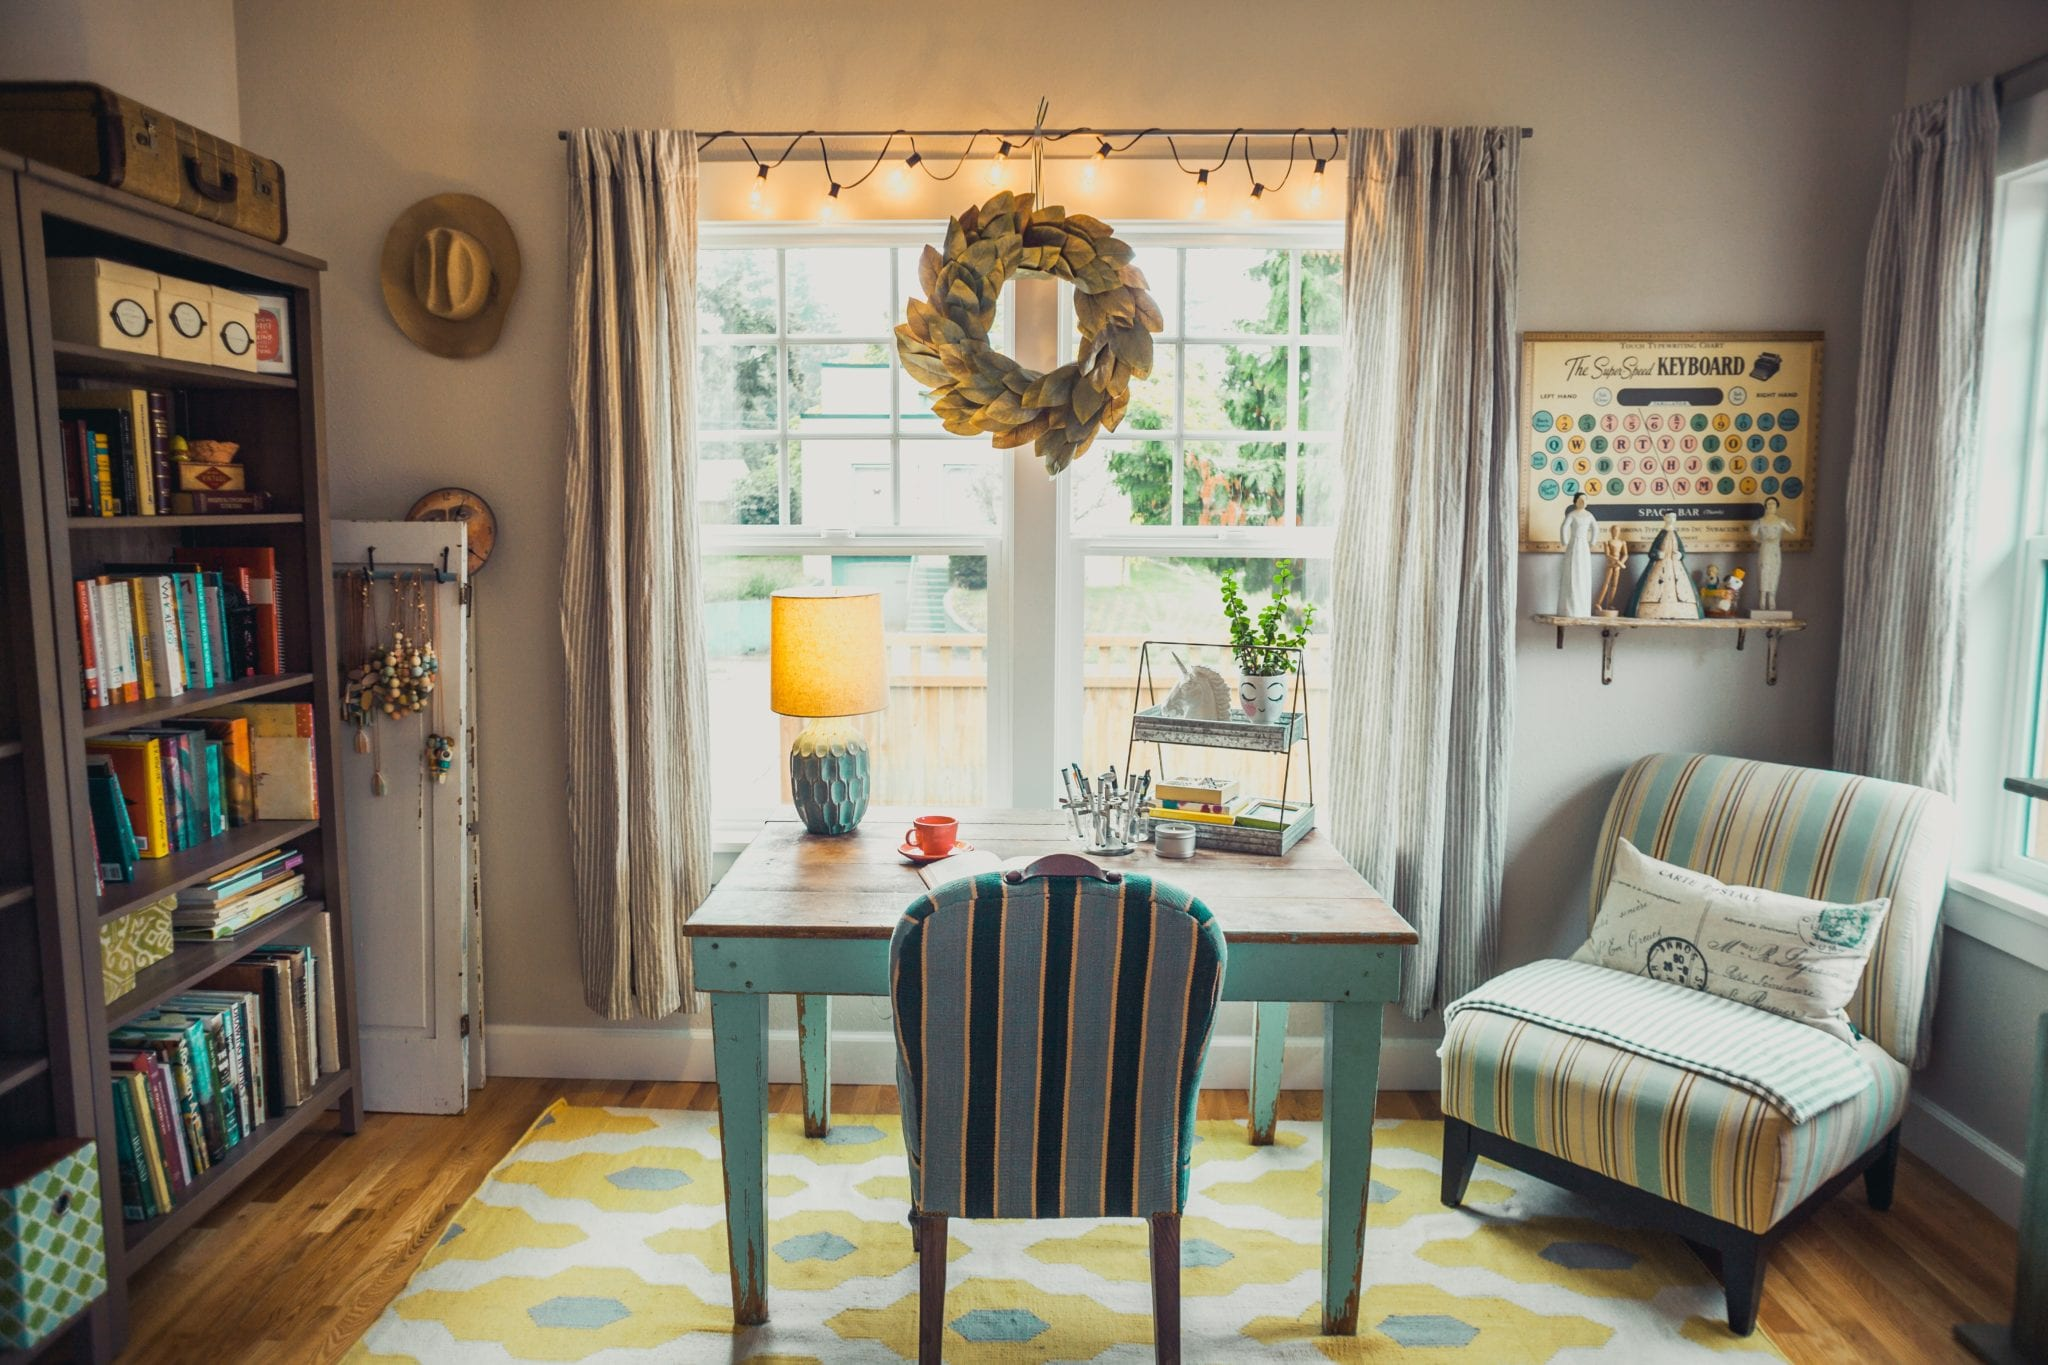 beige table lamp on table with chair in room by window